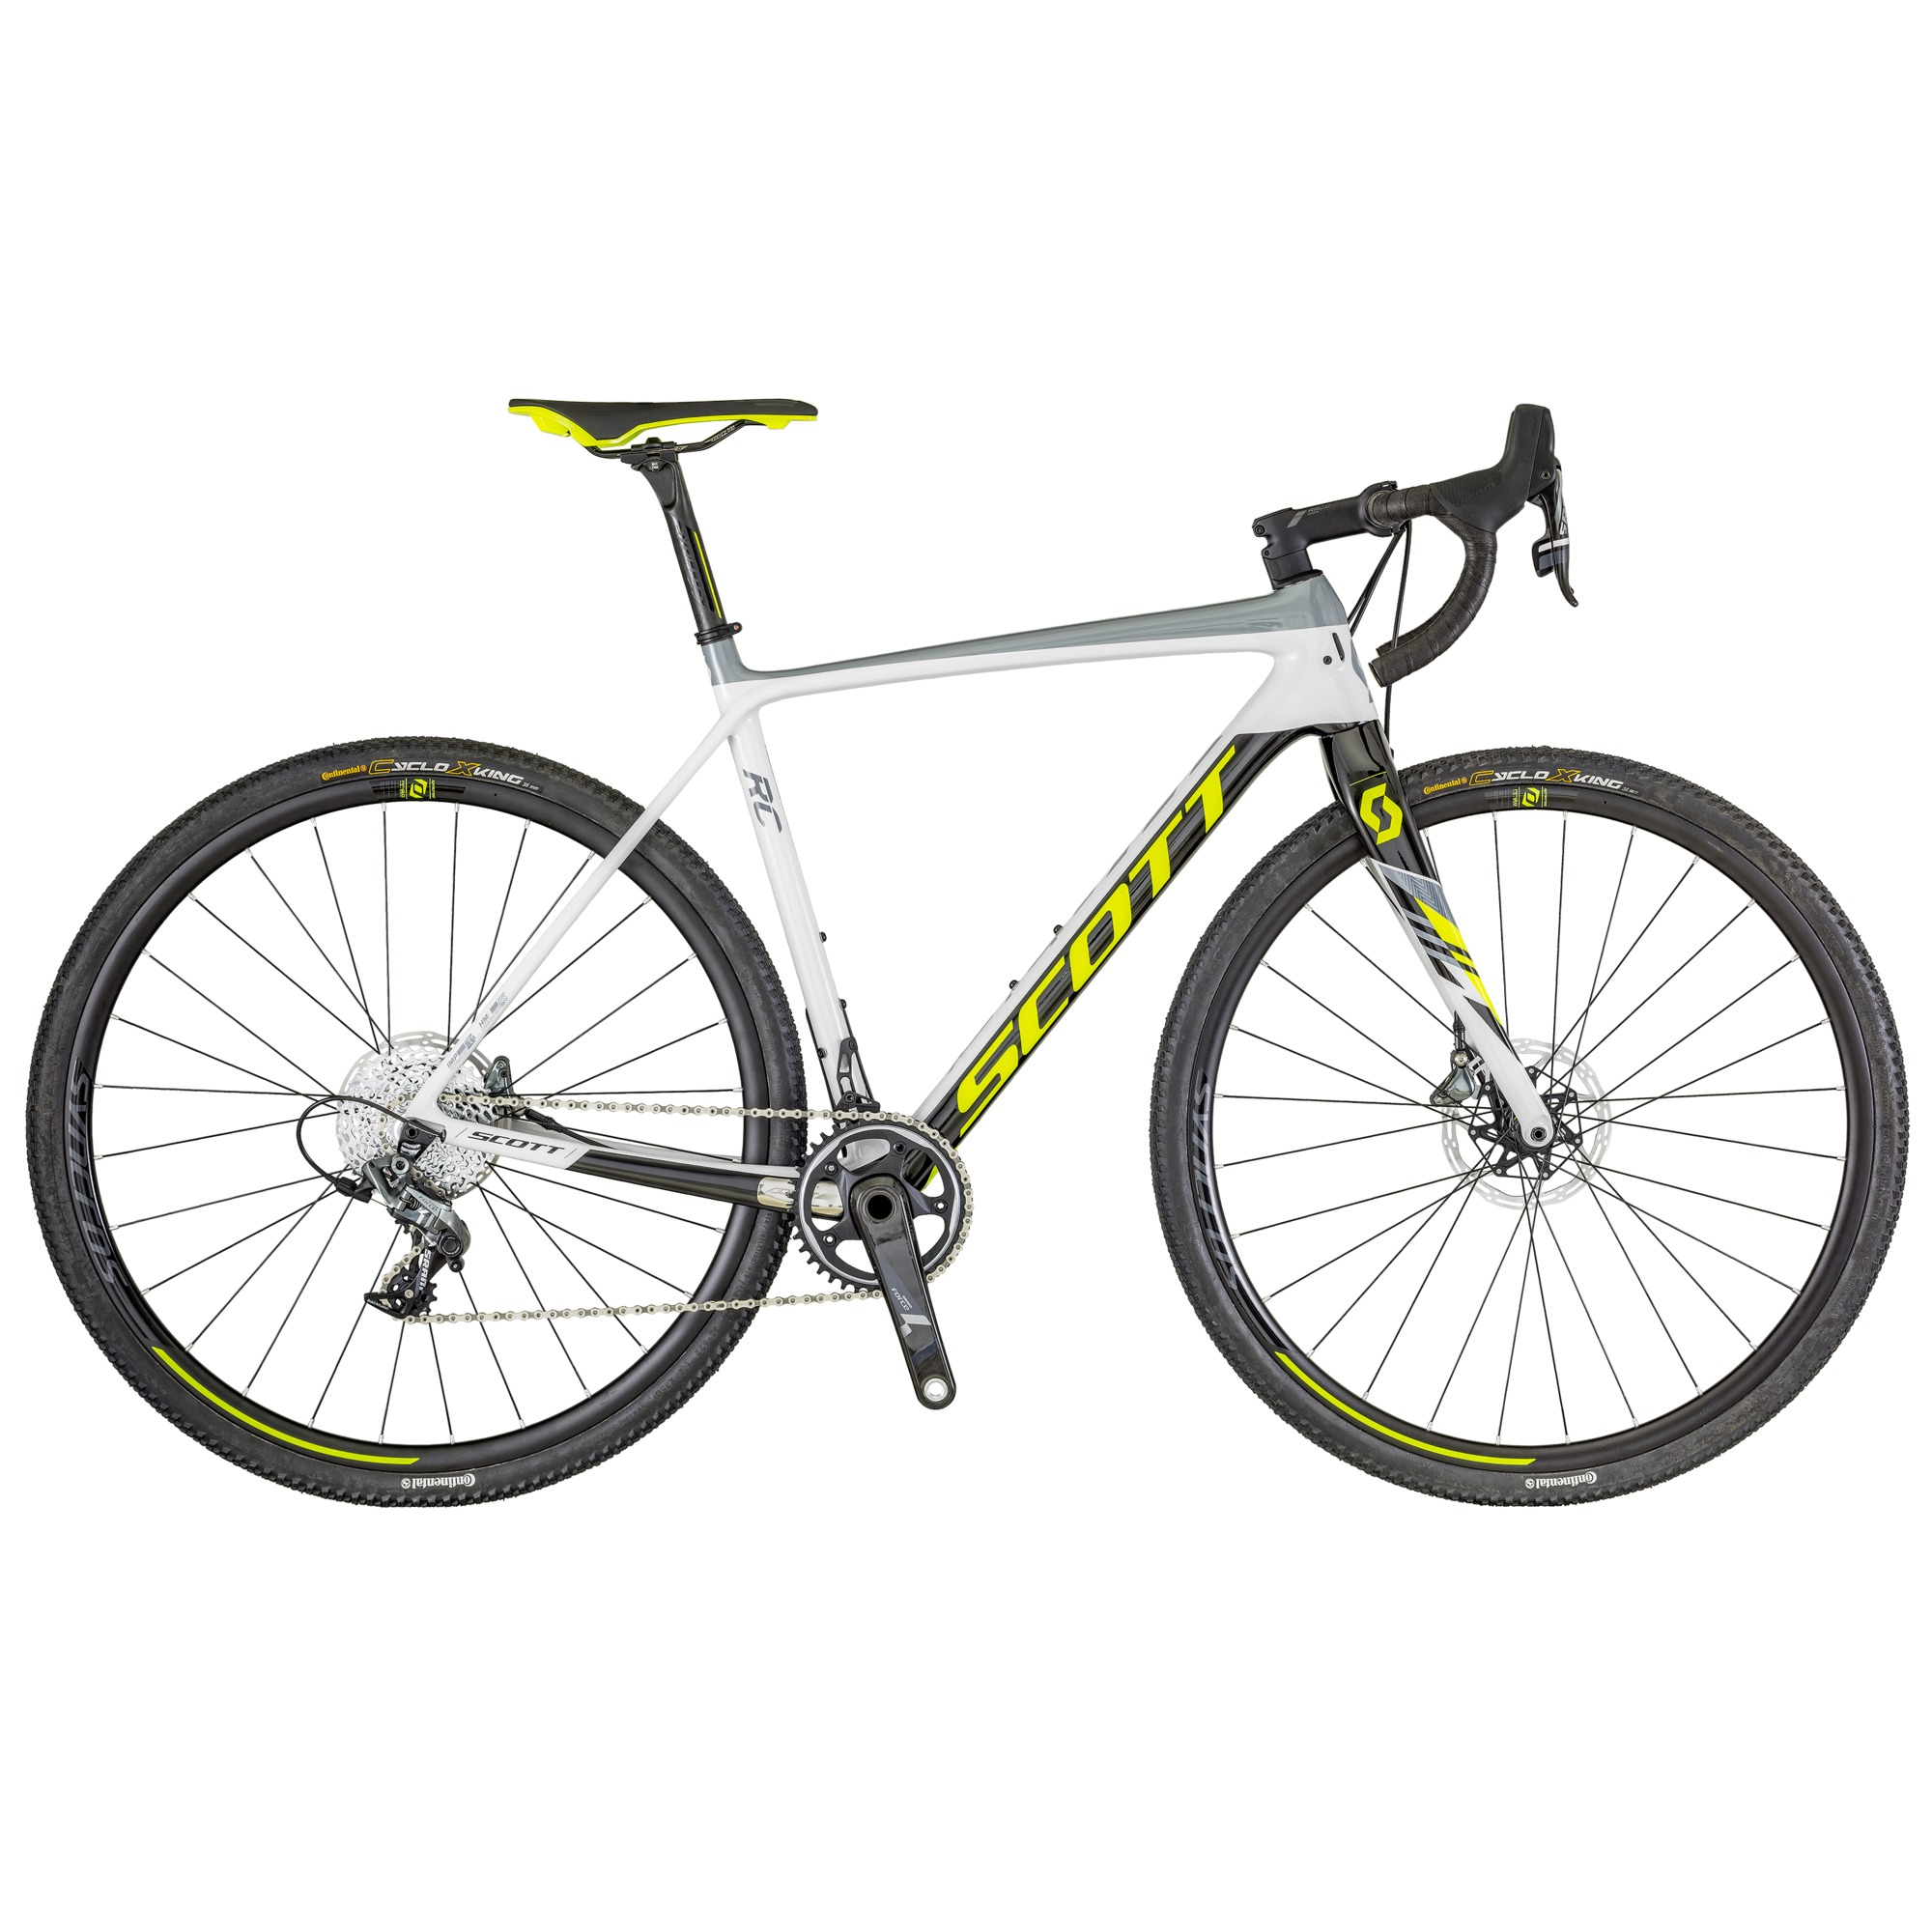 SCOTT Addict CX RC Disc Bike XS49 - Zweirad Homann